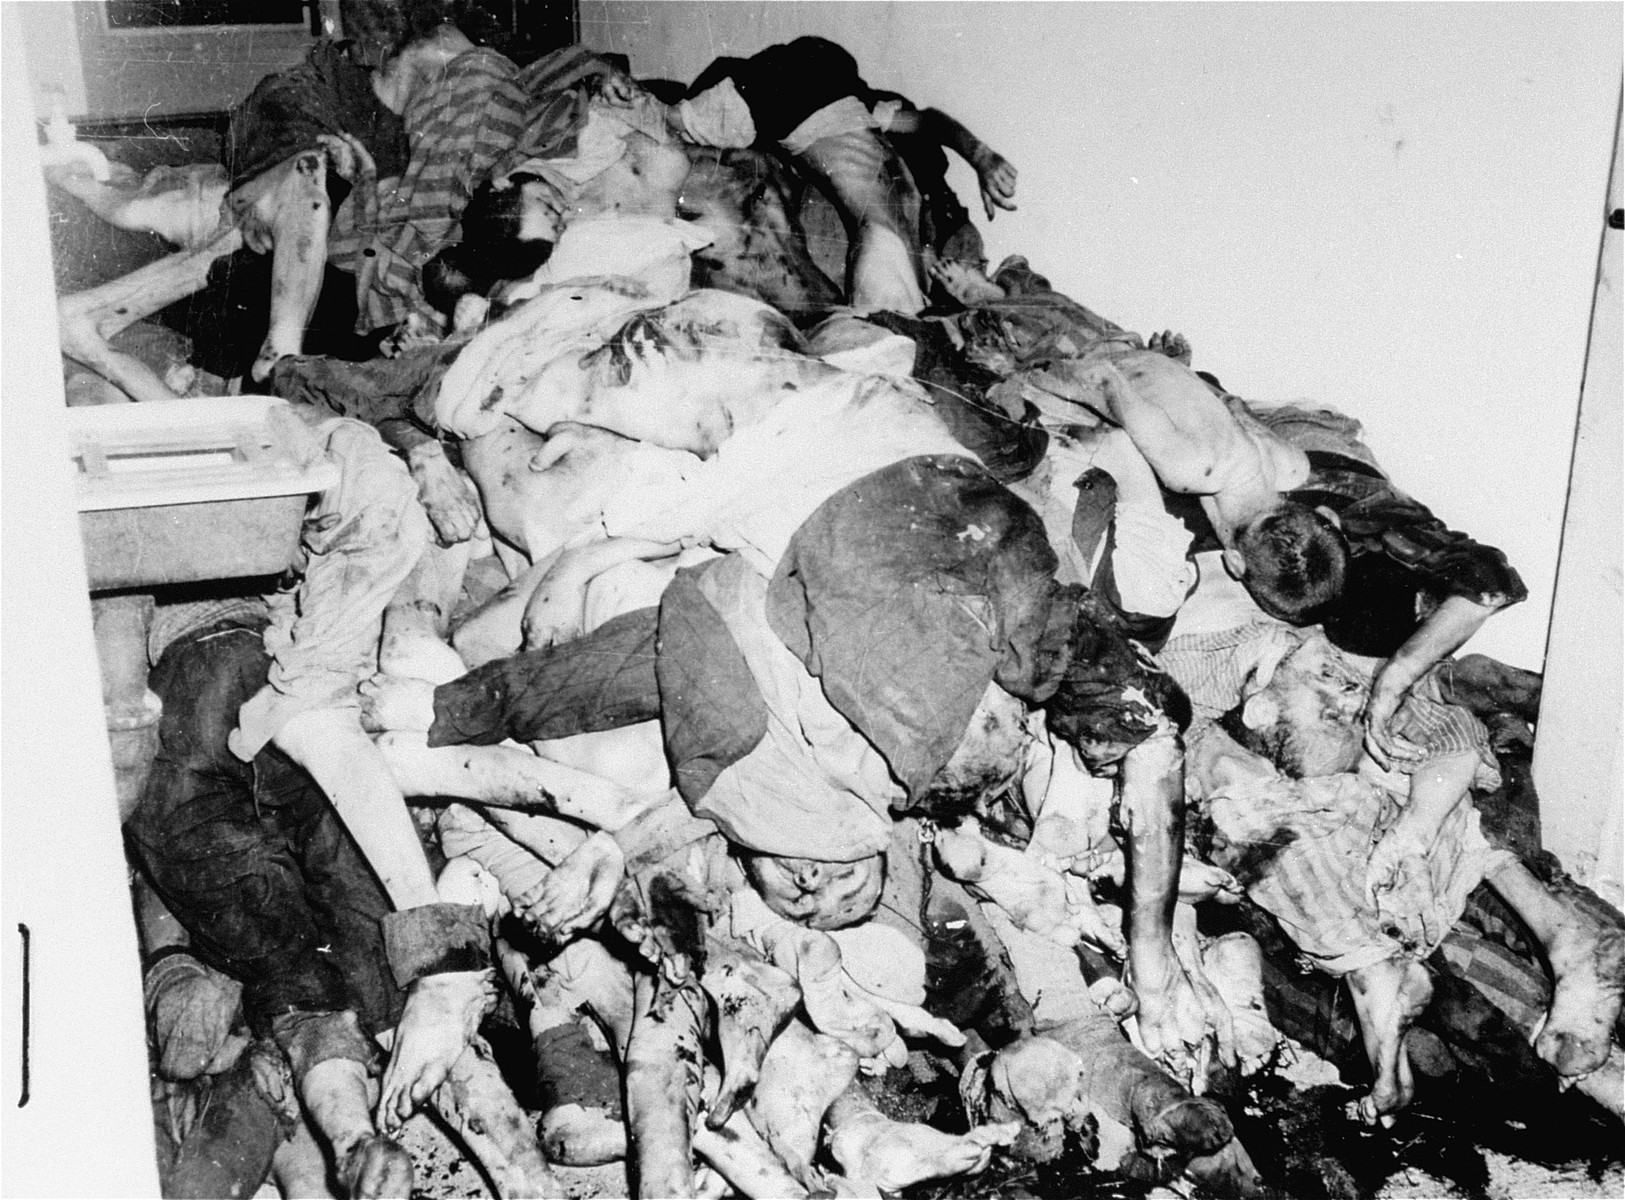 Corpses piled in the crematorium mortuary.  These rooms became so filled with bodies that the SS staff and survivors began to pile corpses behind the crematorium, where they were found by U.S. troops during the liberation of the camp.